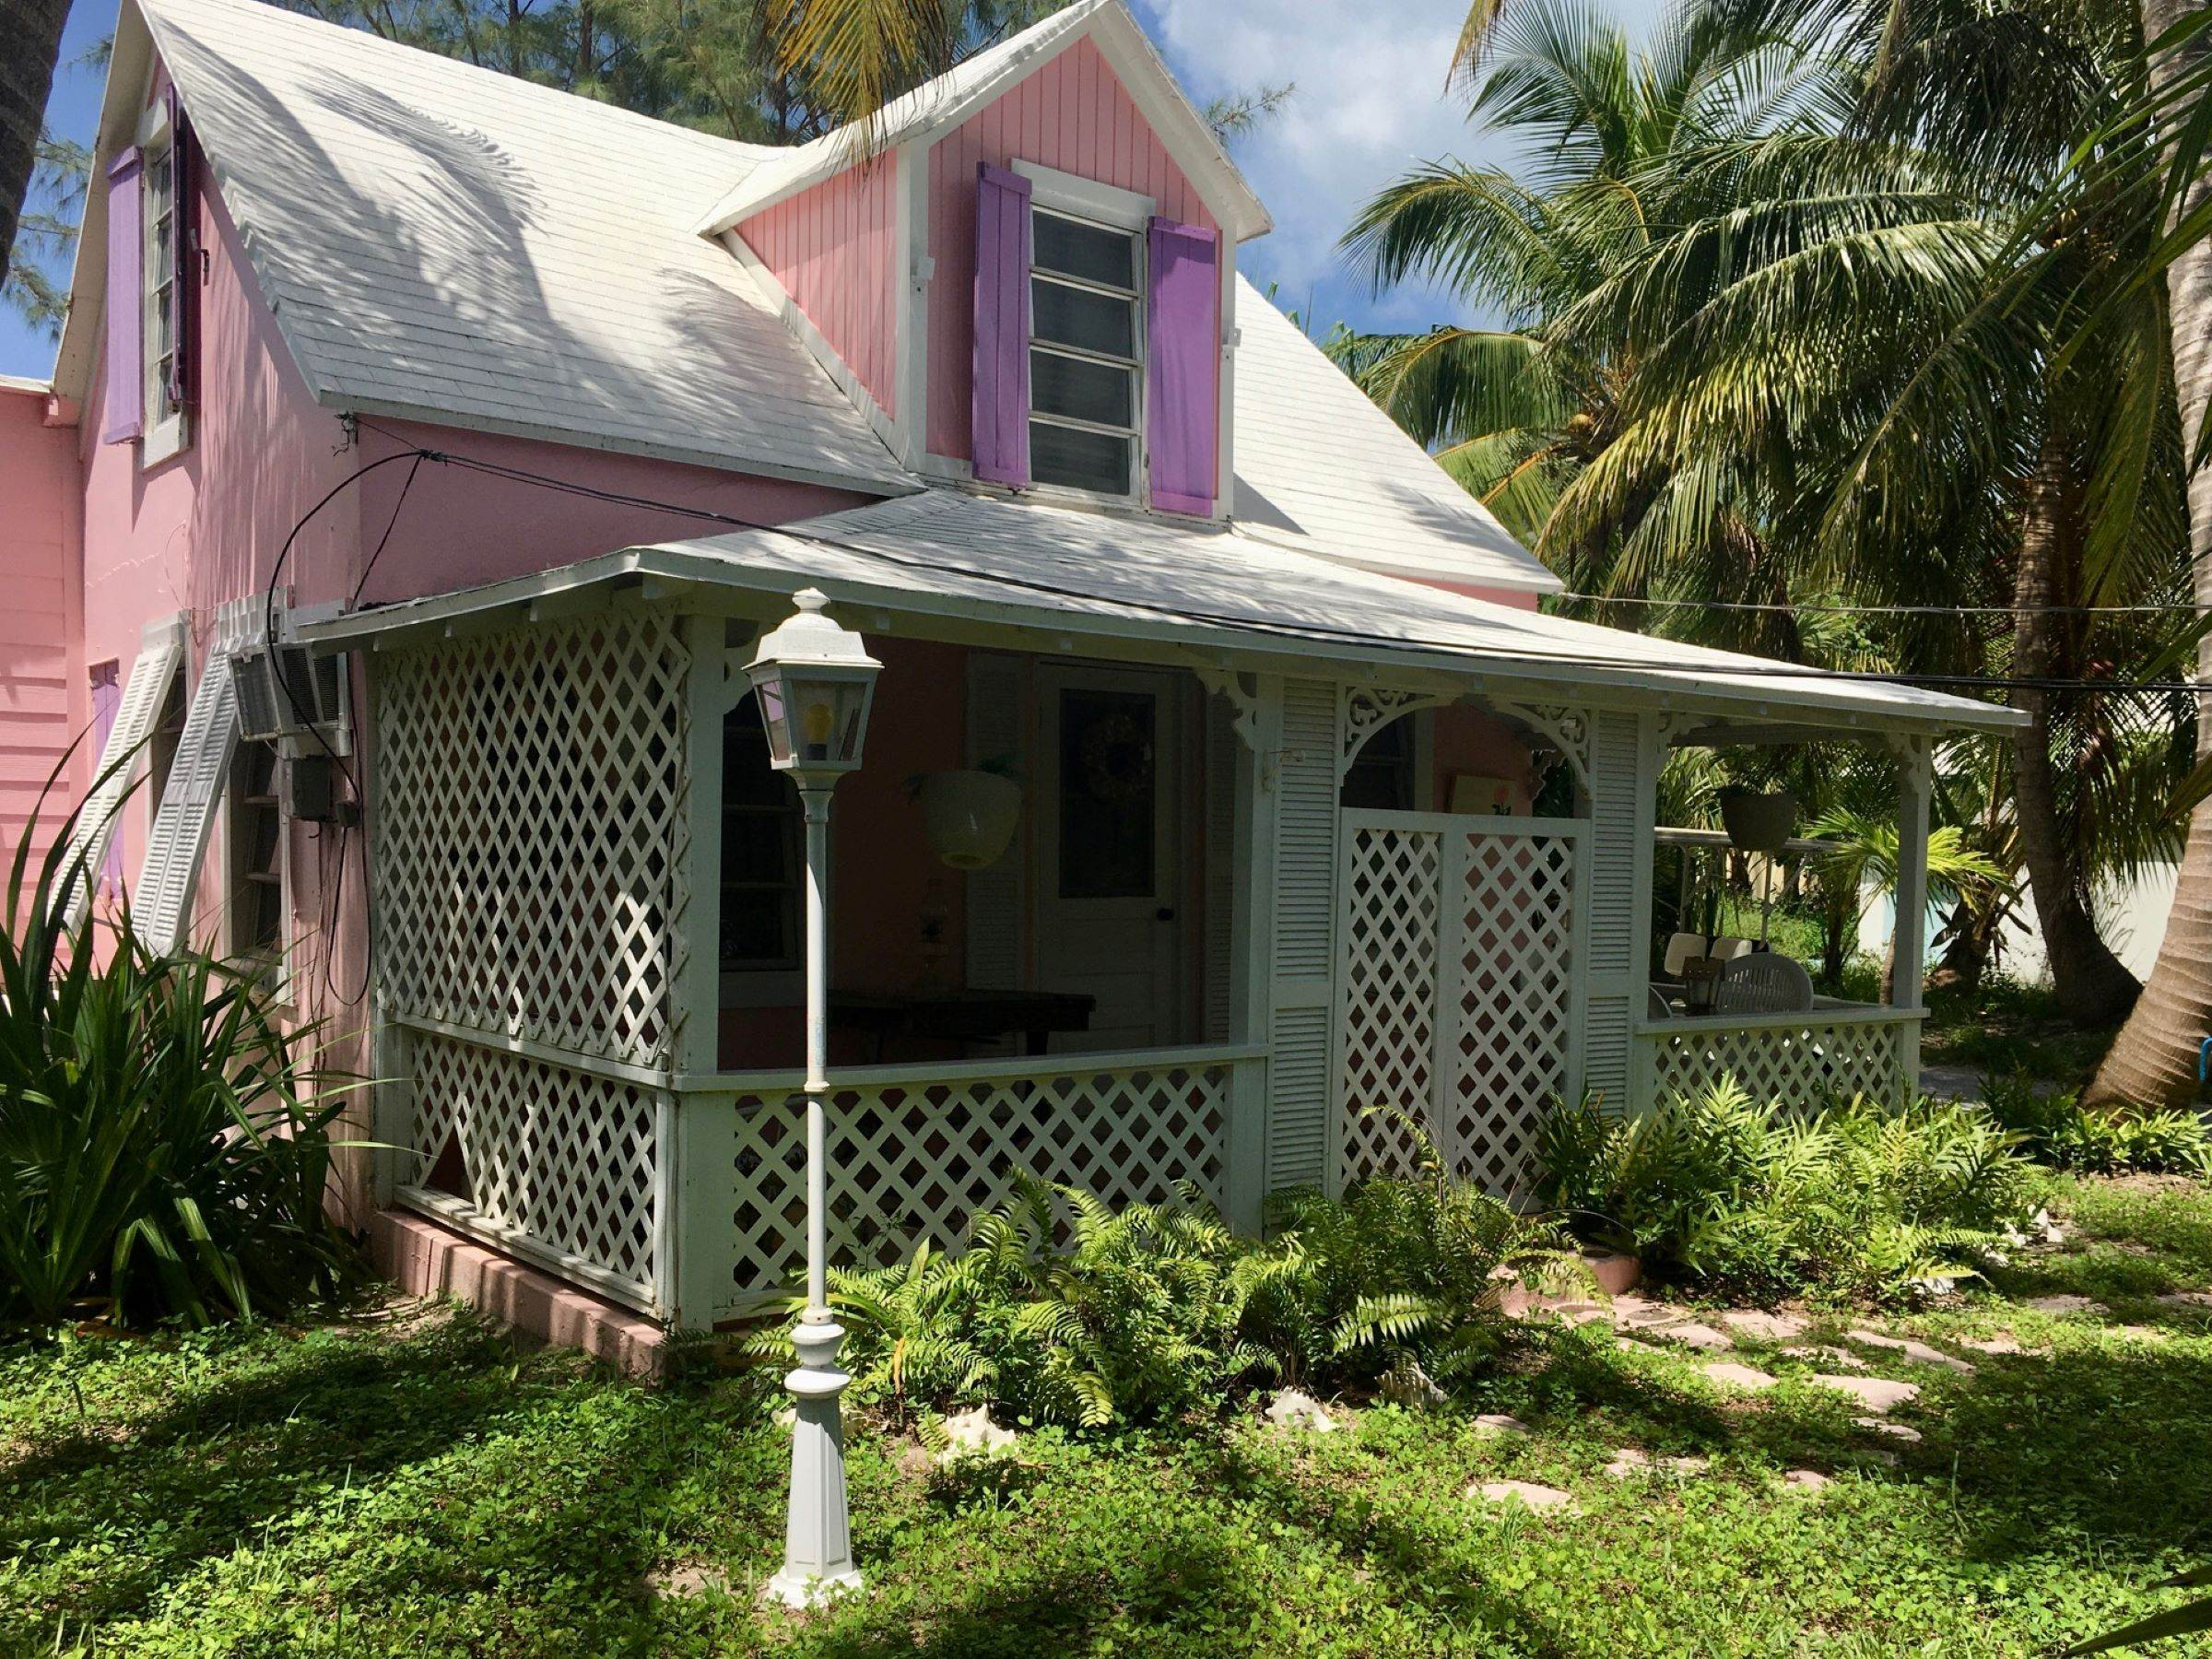 Single Family Homes for Sale at Quaint Historic Spanish Wells Cottage Spanish Wells, Eleuthera, Bahamas